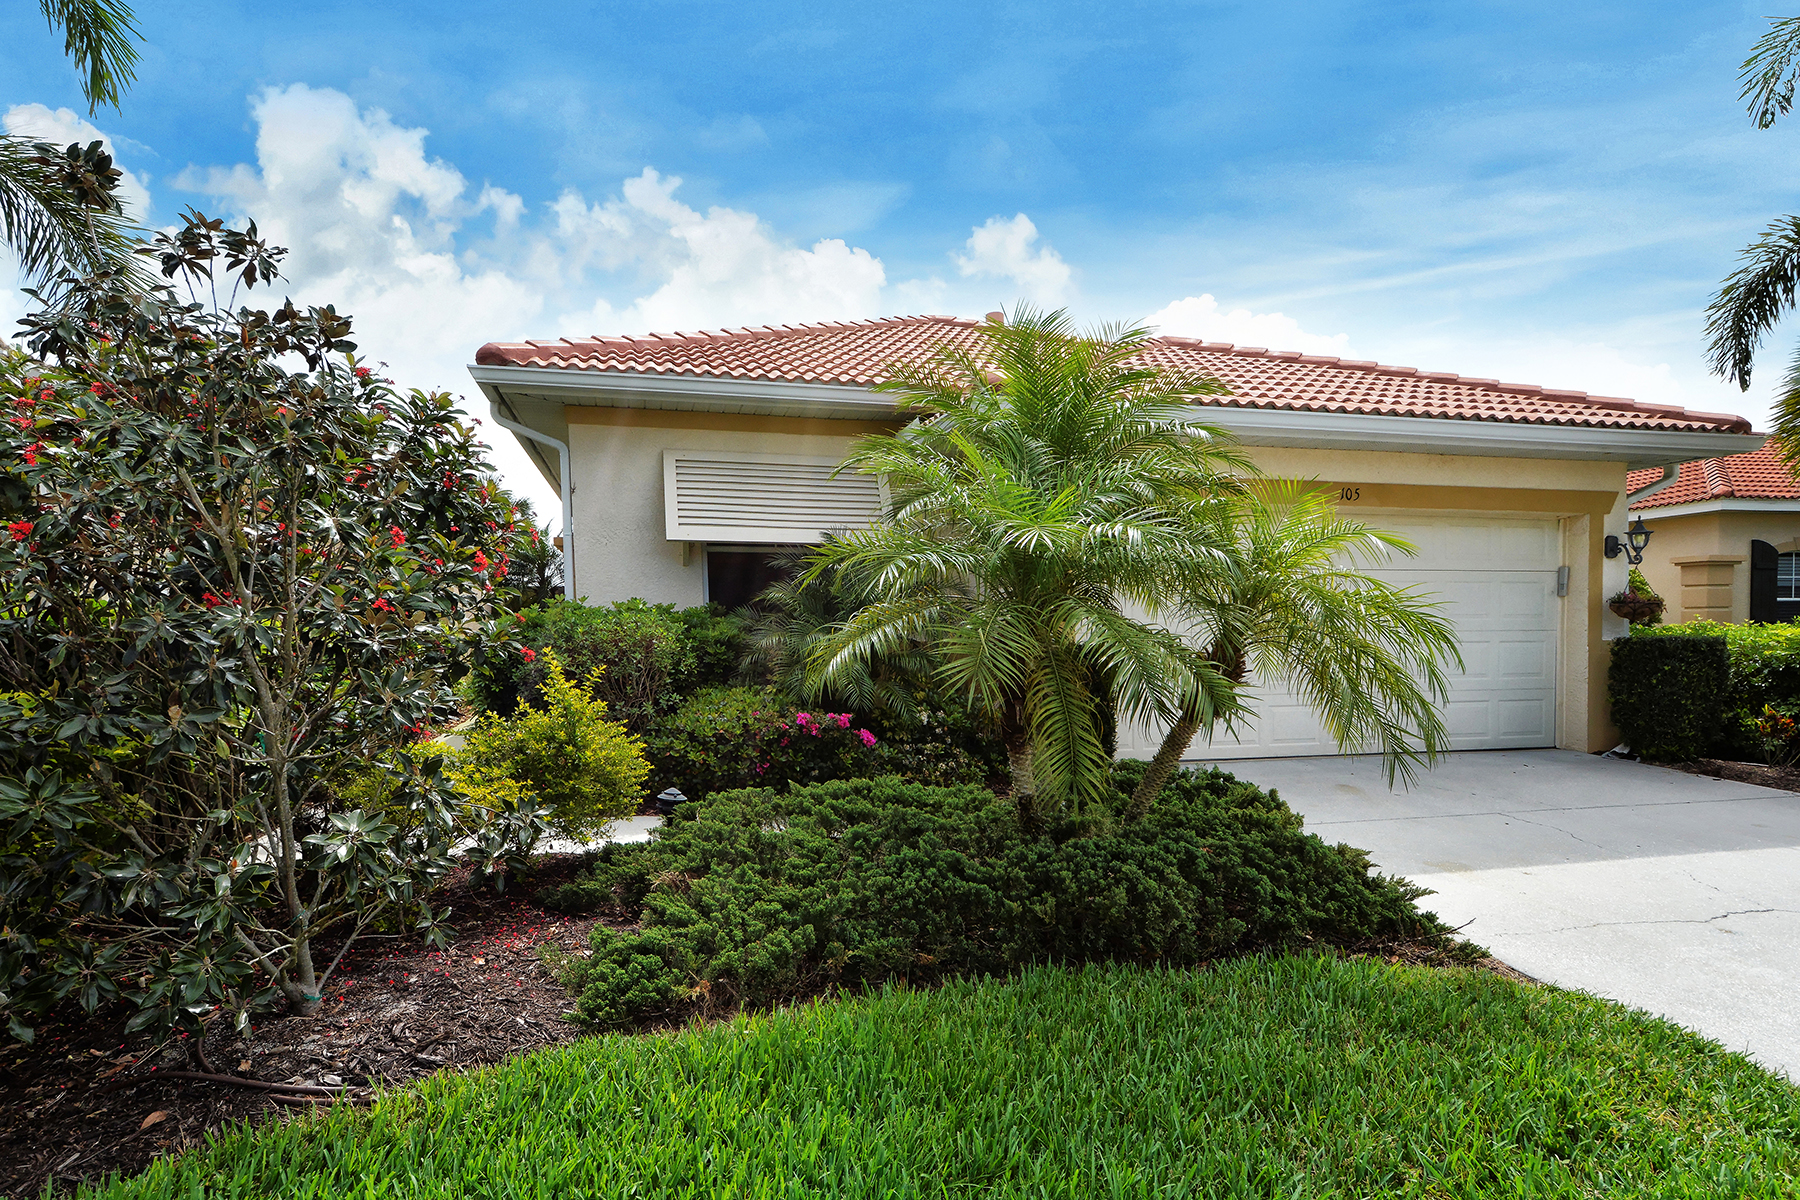 Single Family Home for Sale at VENETIAN GOLF & RIVER CLUB 105 Mestre Ct North Venice, Florida, 34275 United States